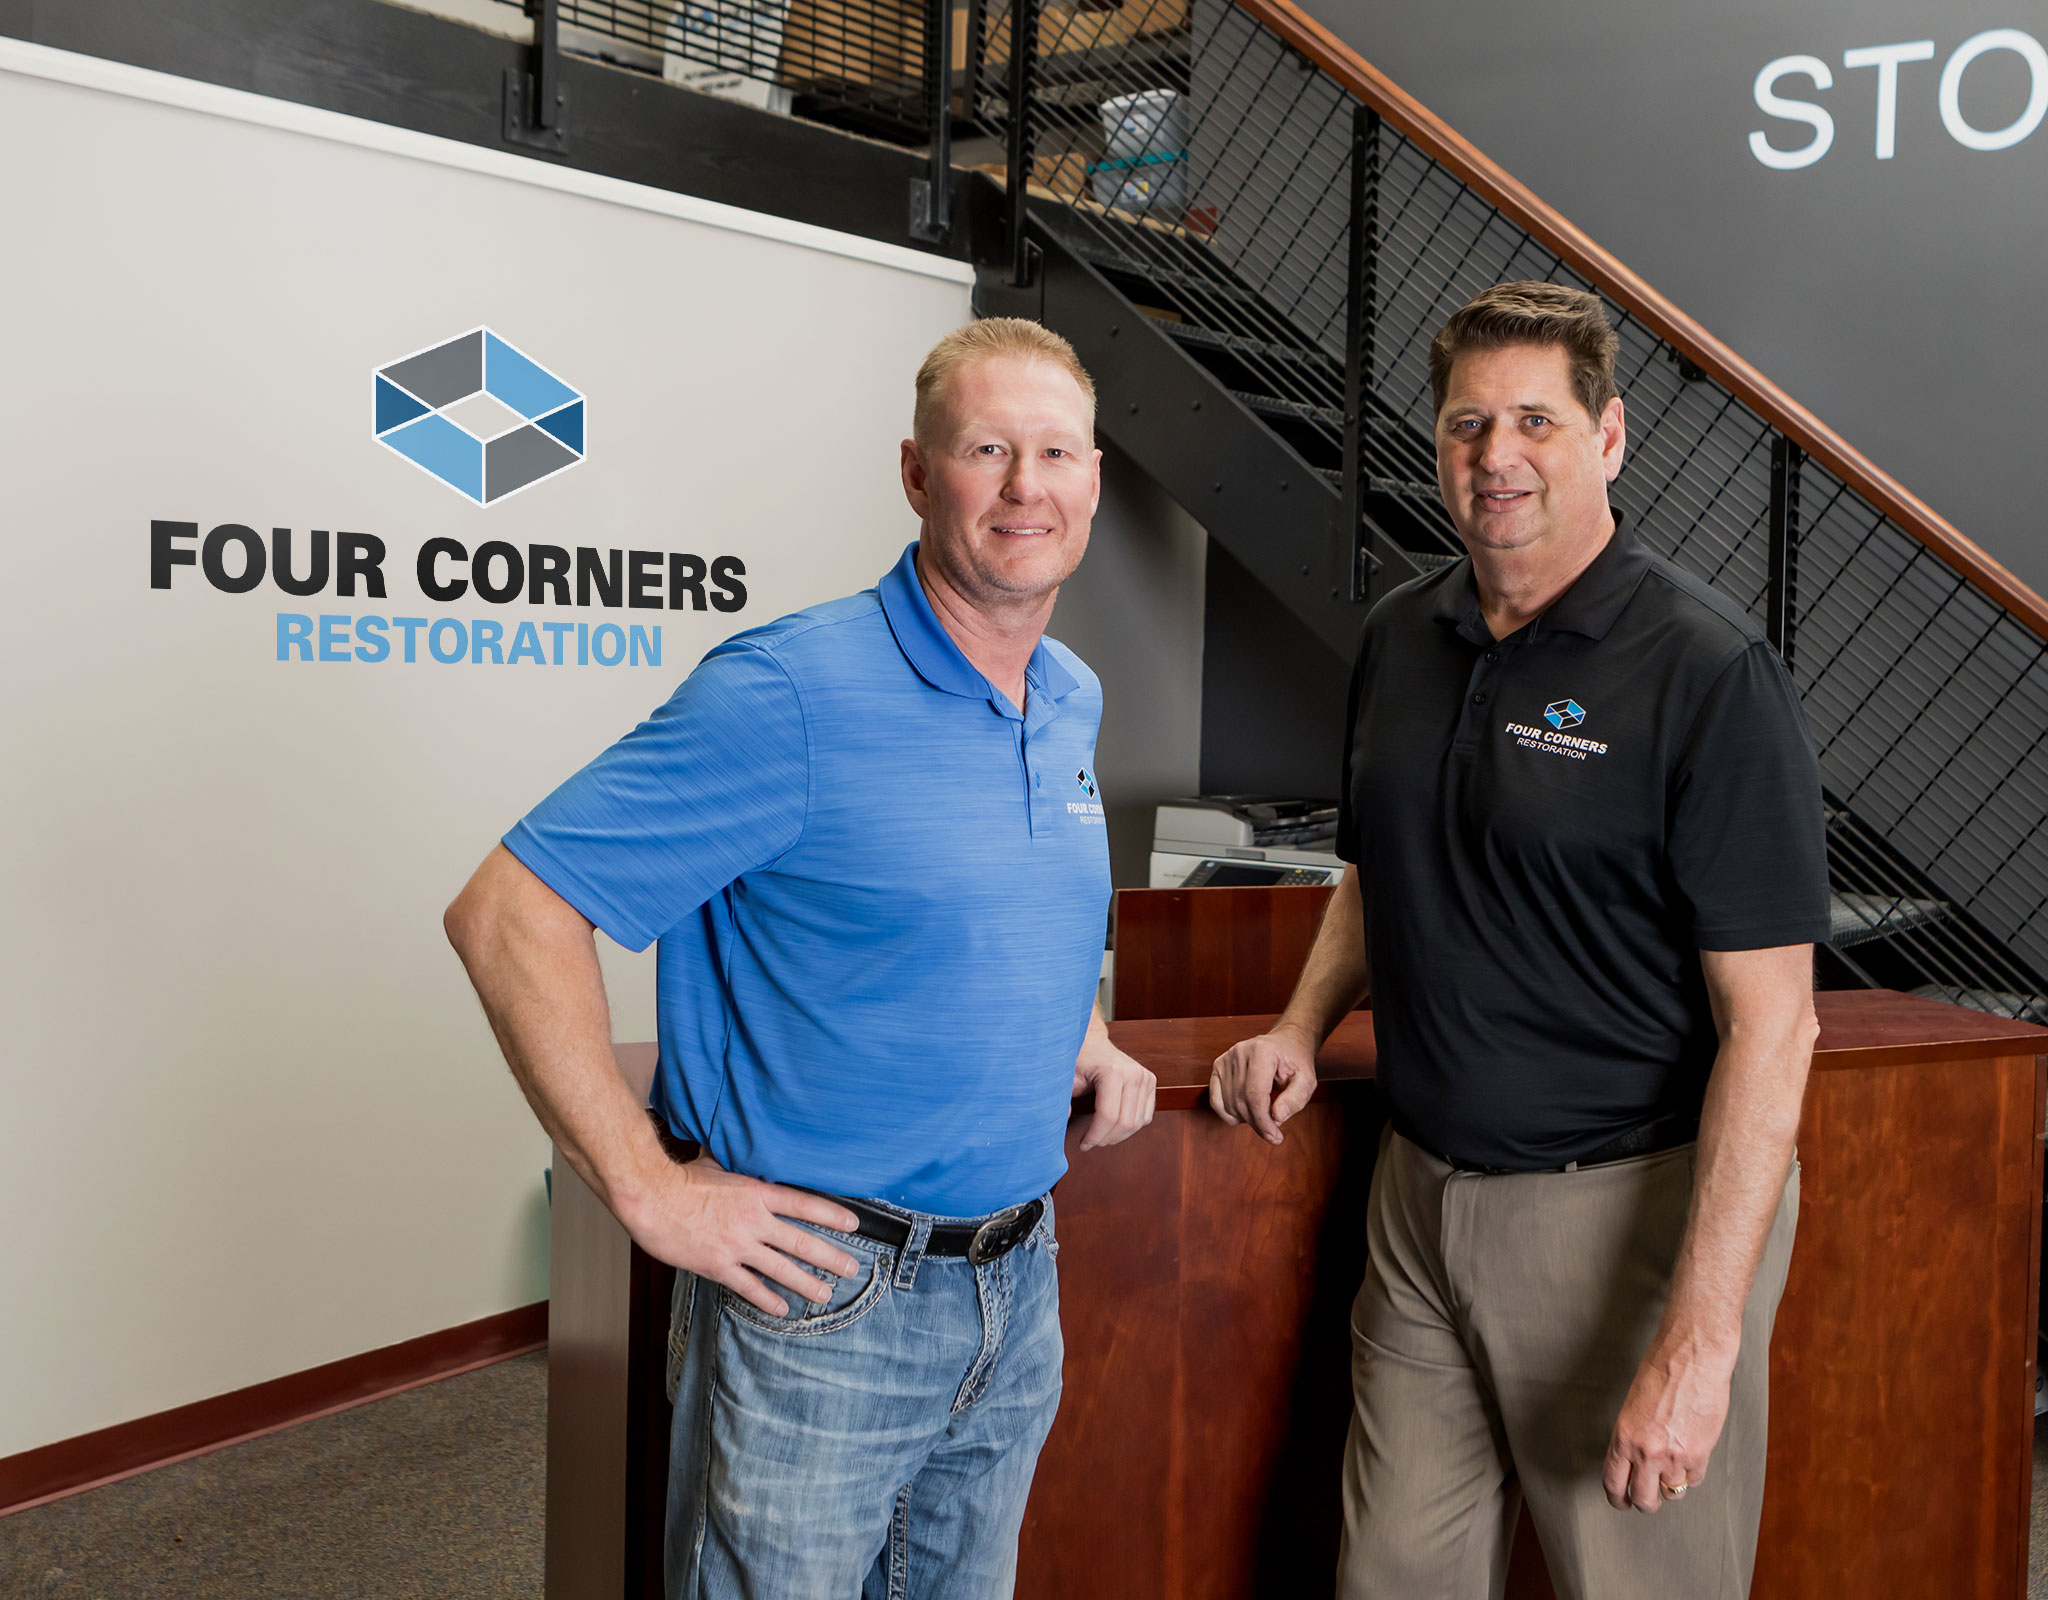 The owners of Four Corners Restoration